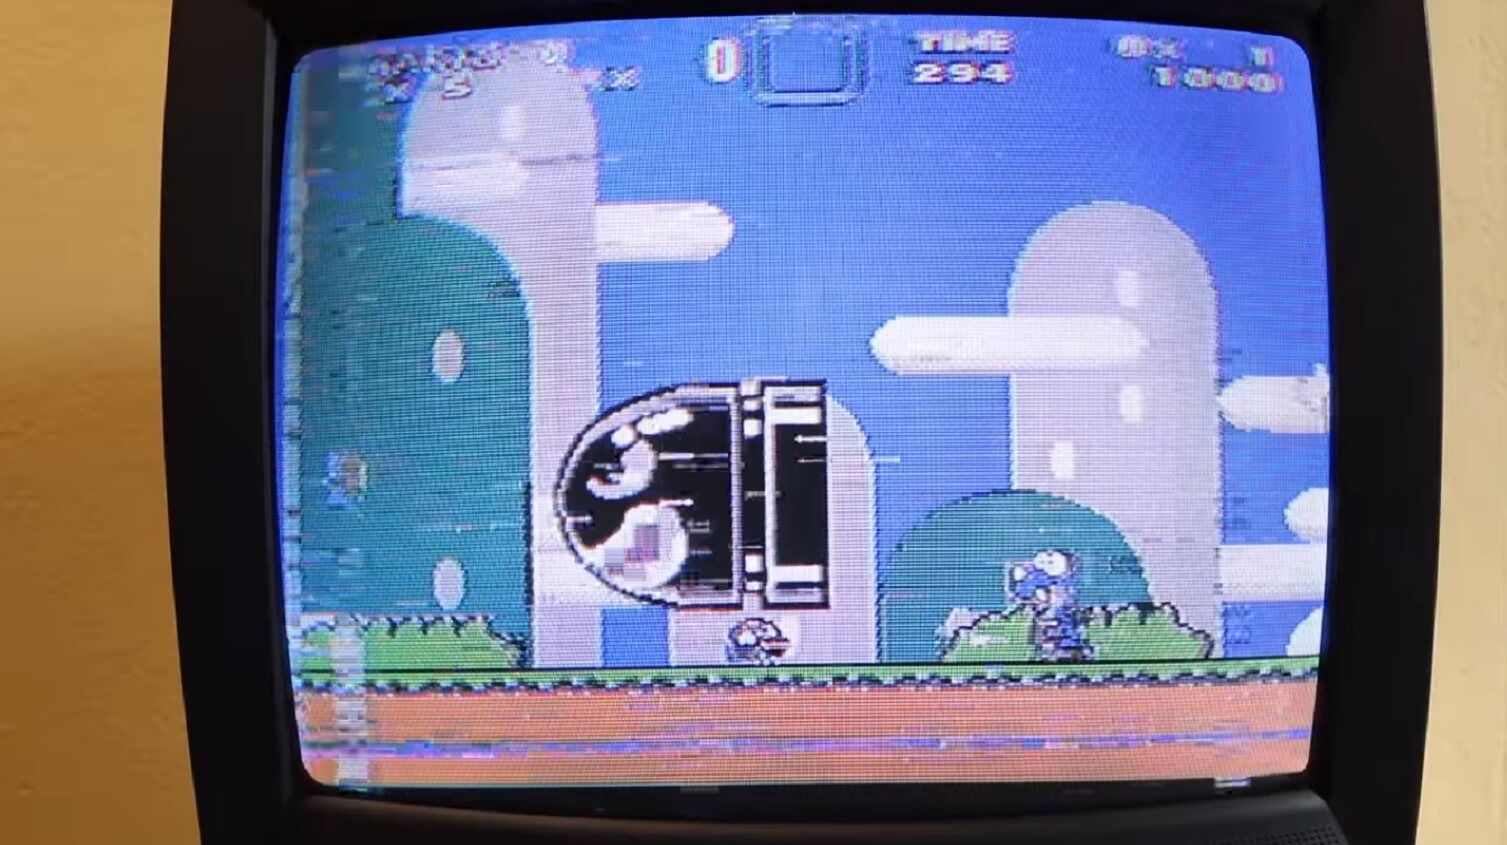 A hacker used reverse-engineering to play Super NES games on an